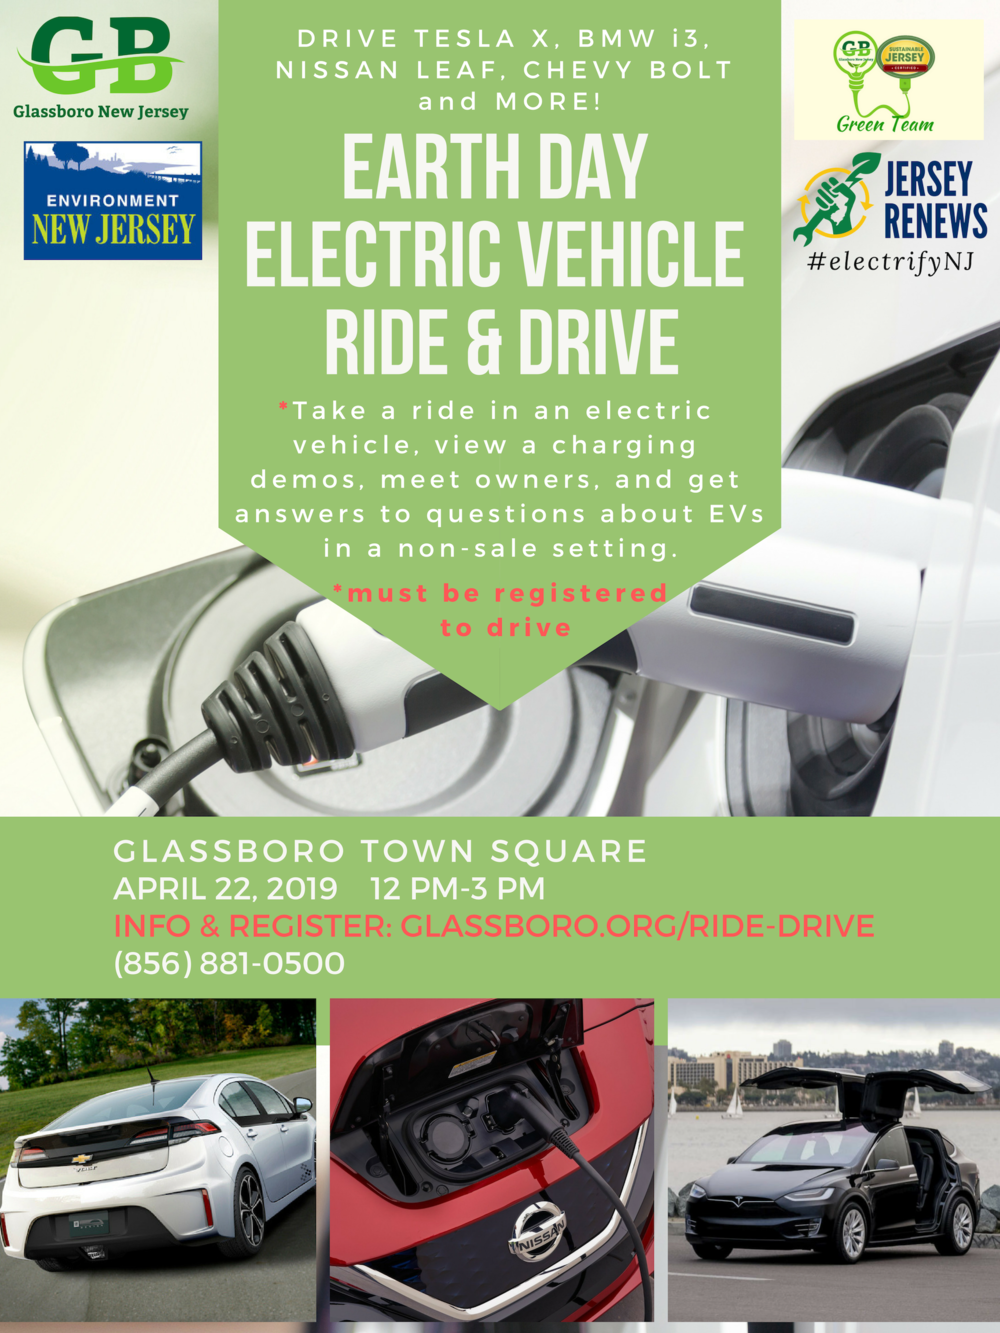 earth day ride and drive in glassboro (1).png